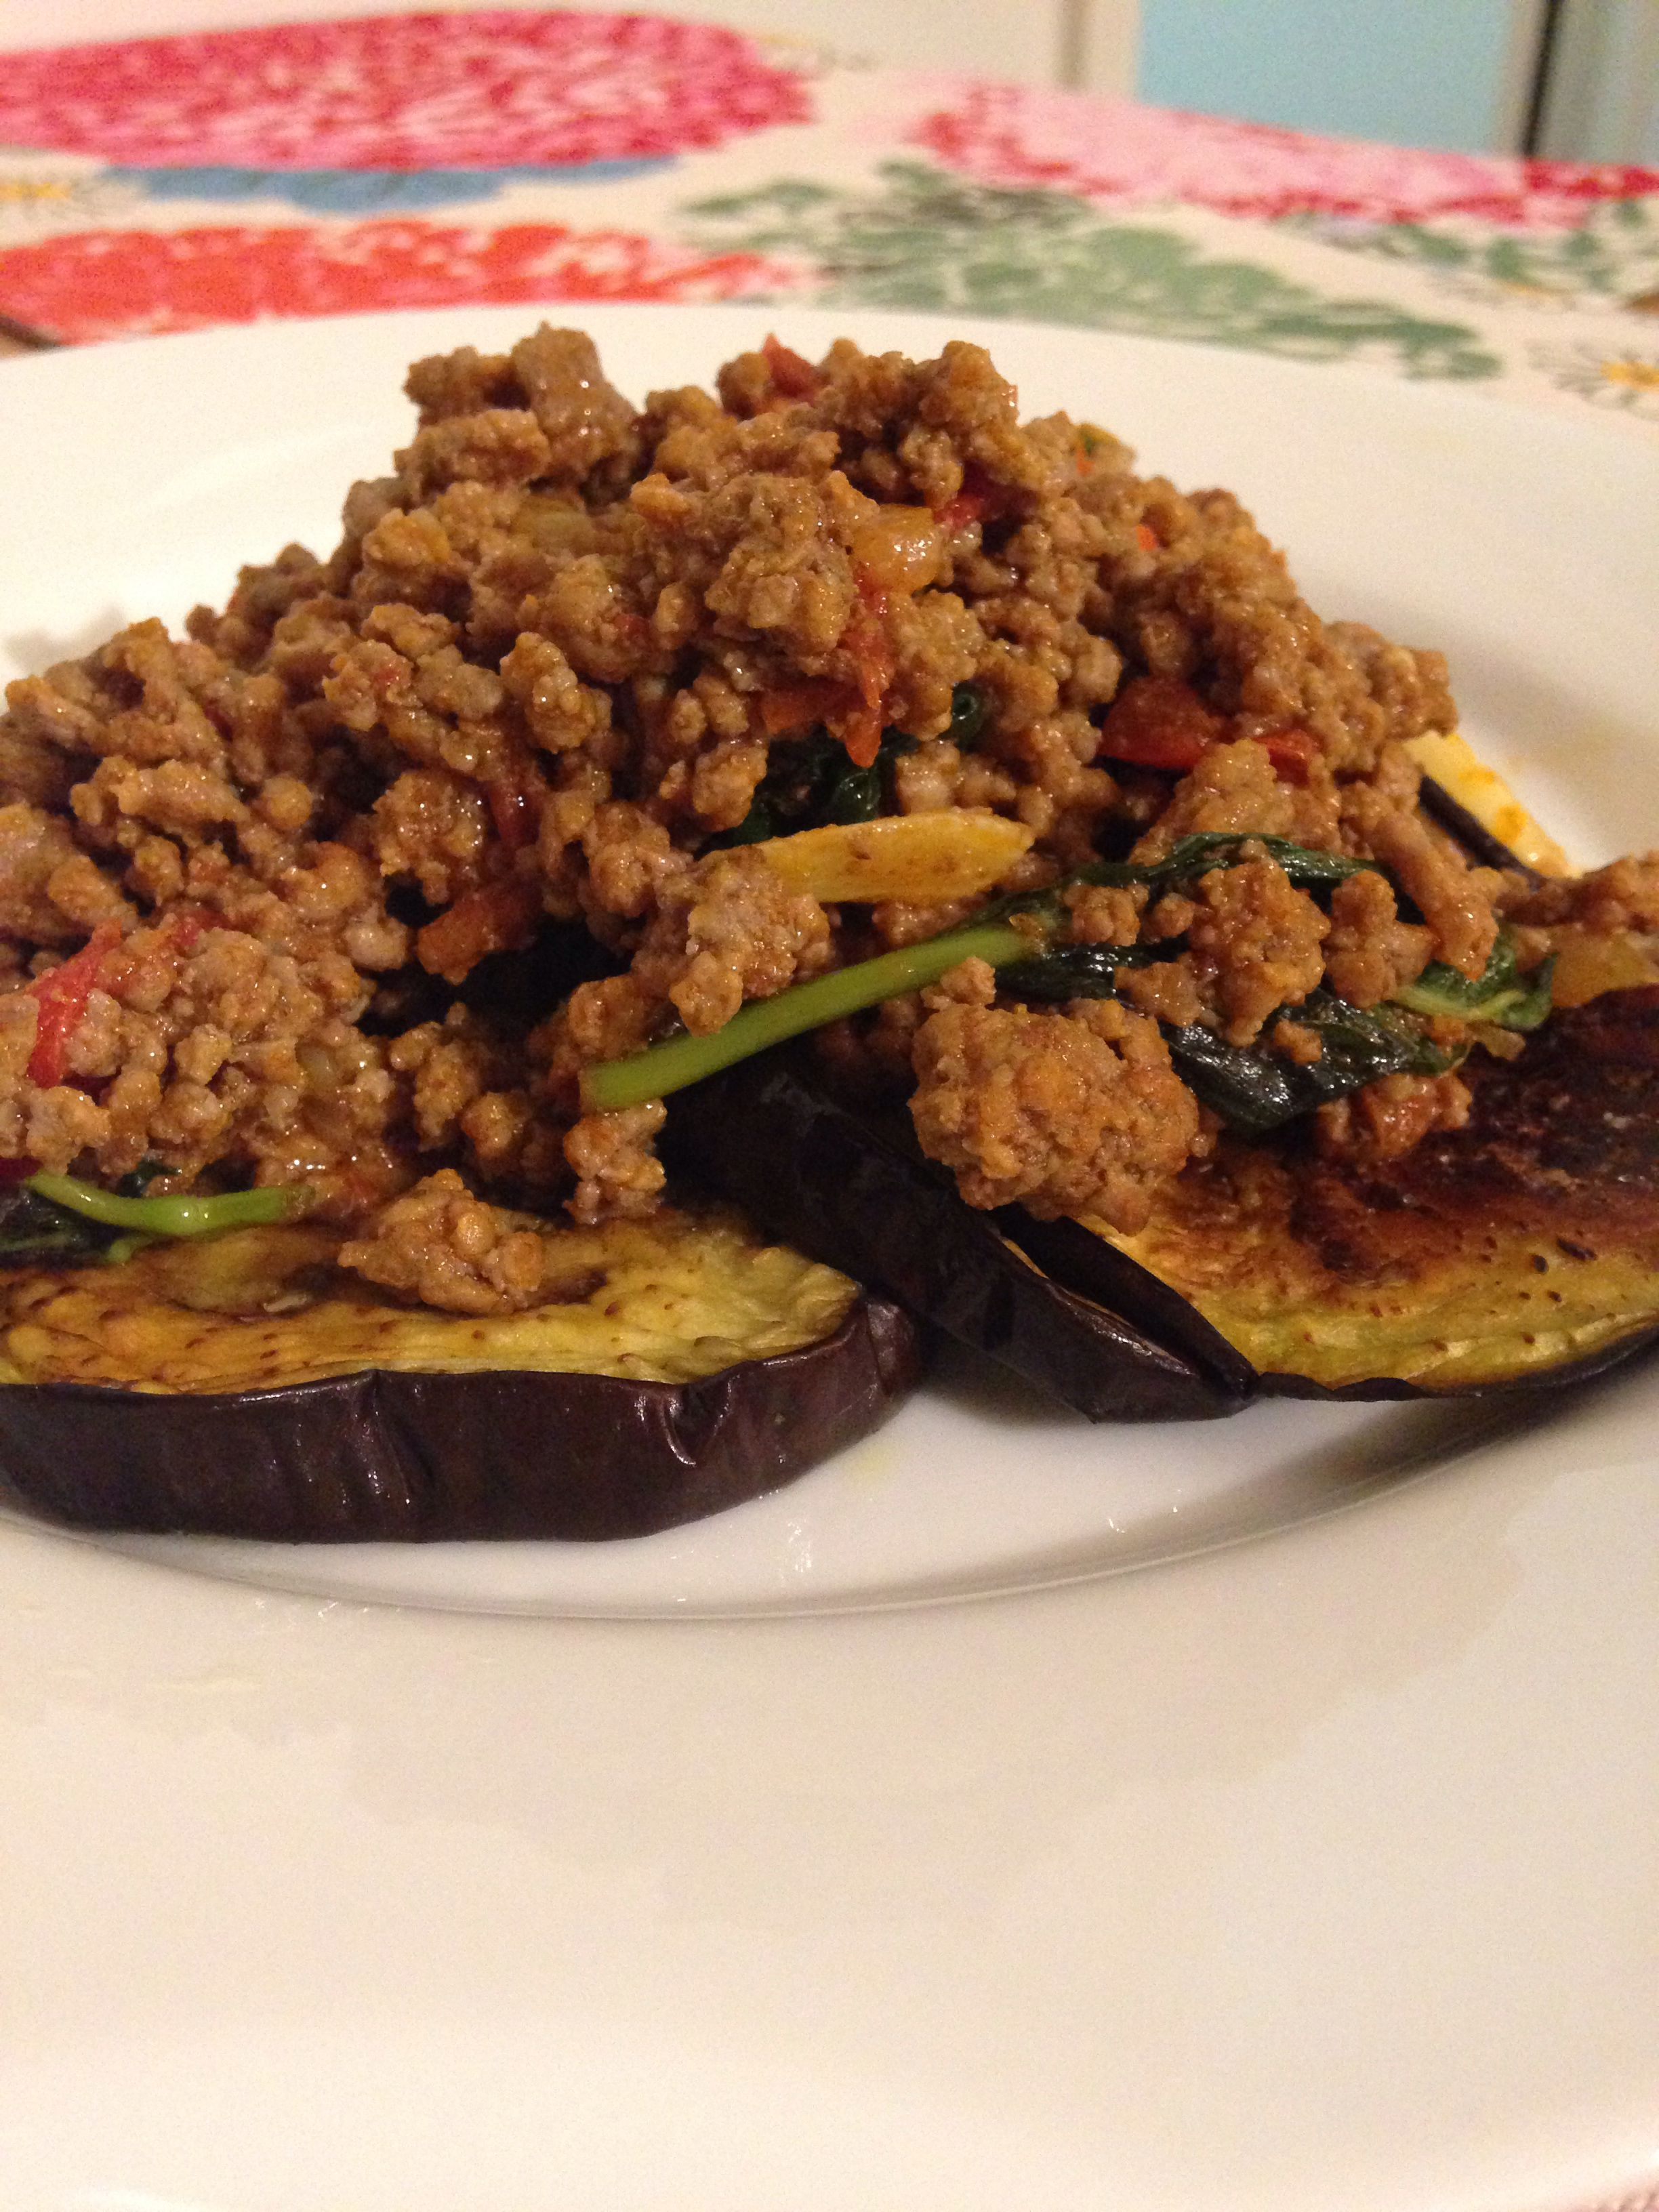 Baked eggplant topped with cumin ground beef mixed with tomatoes, garlic,onions, red peppers and basil. Yummy...